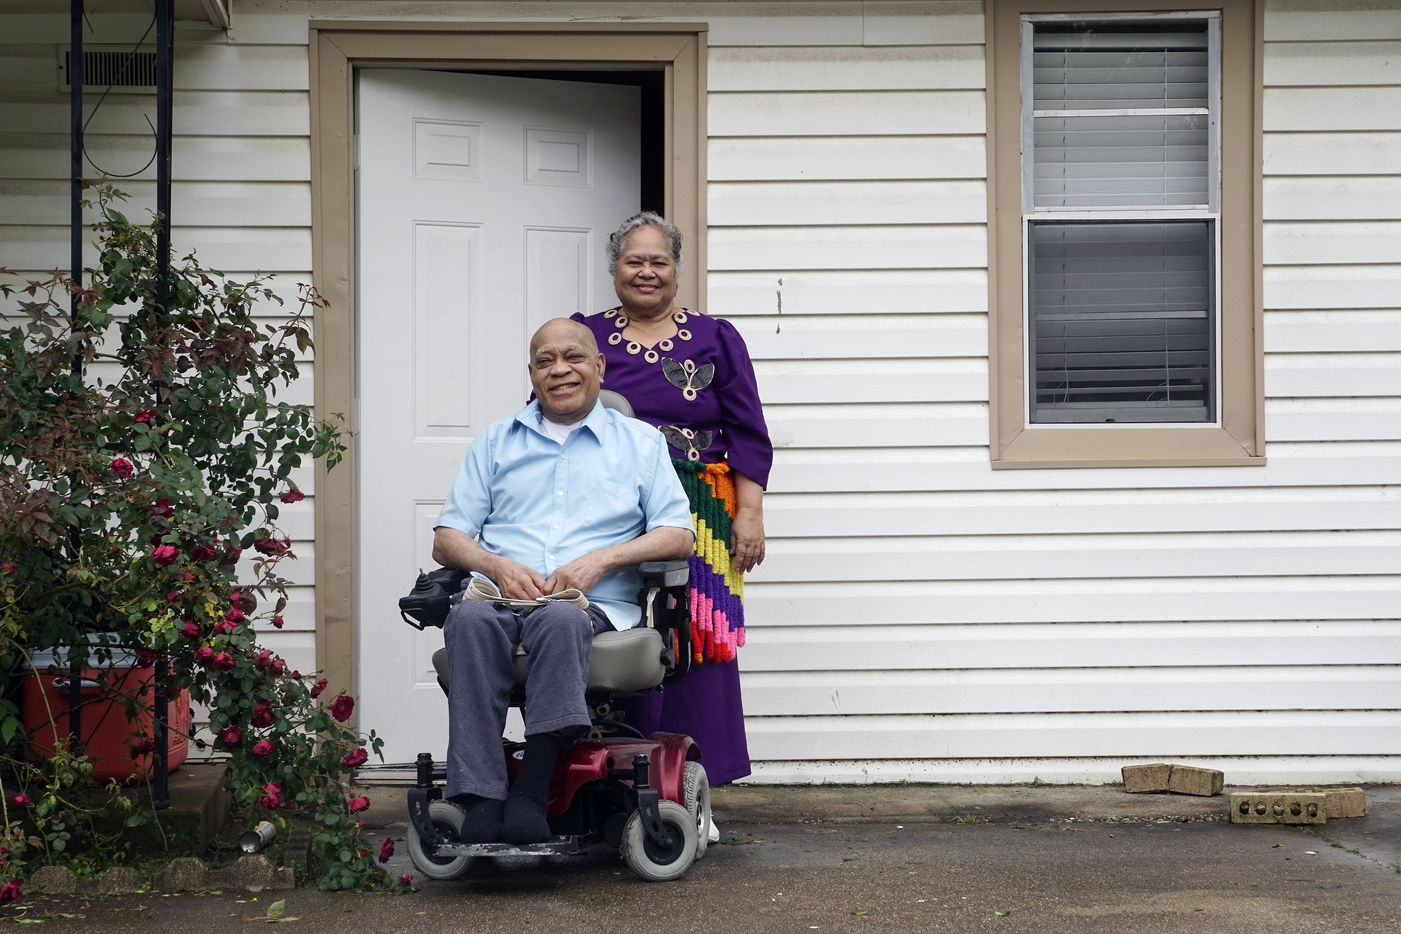 Peni and Losa Asaeli at their home in Euless, Texas on Wednesday, April 24, 2019.  (Lawrence Jenkins/Special Contributor)